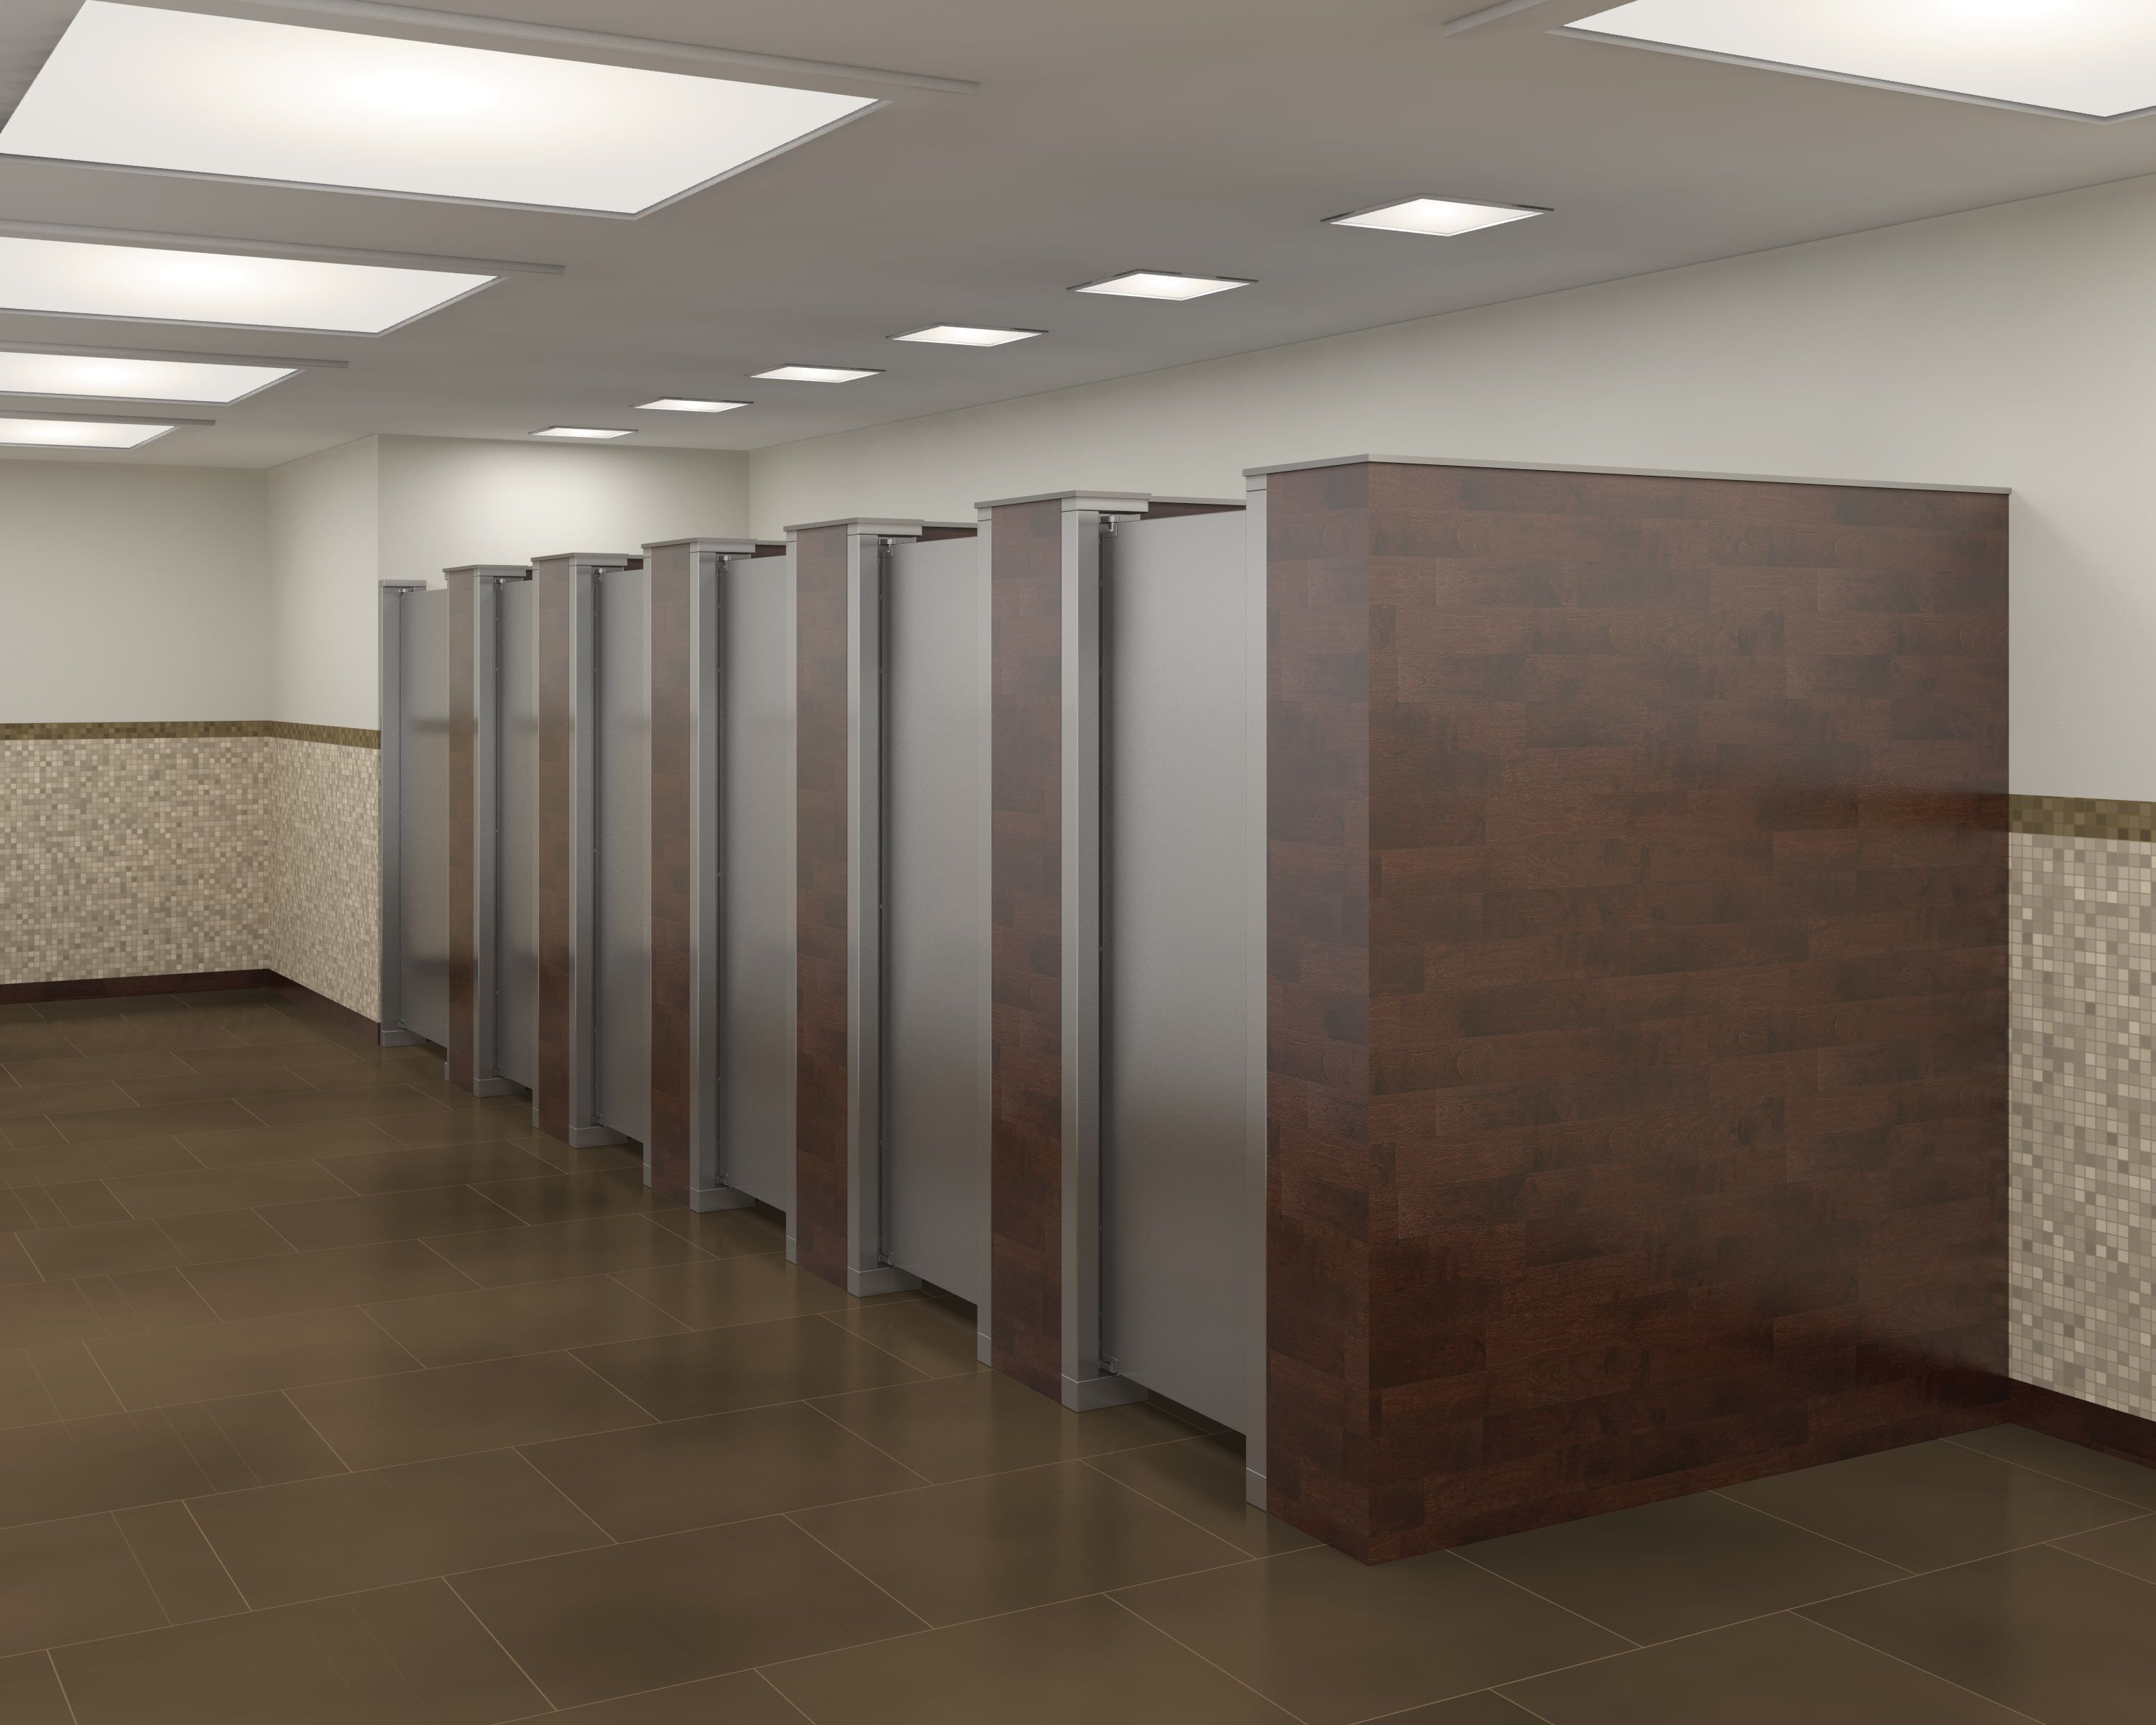 Stainless Steel Parions Doors With Solid Walls Between The Stalls